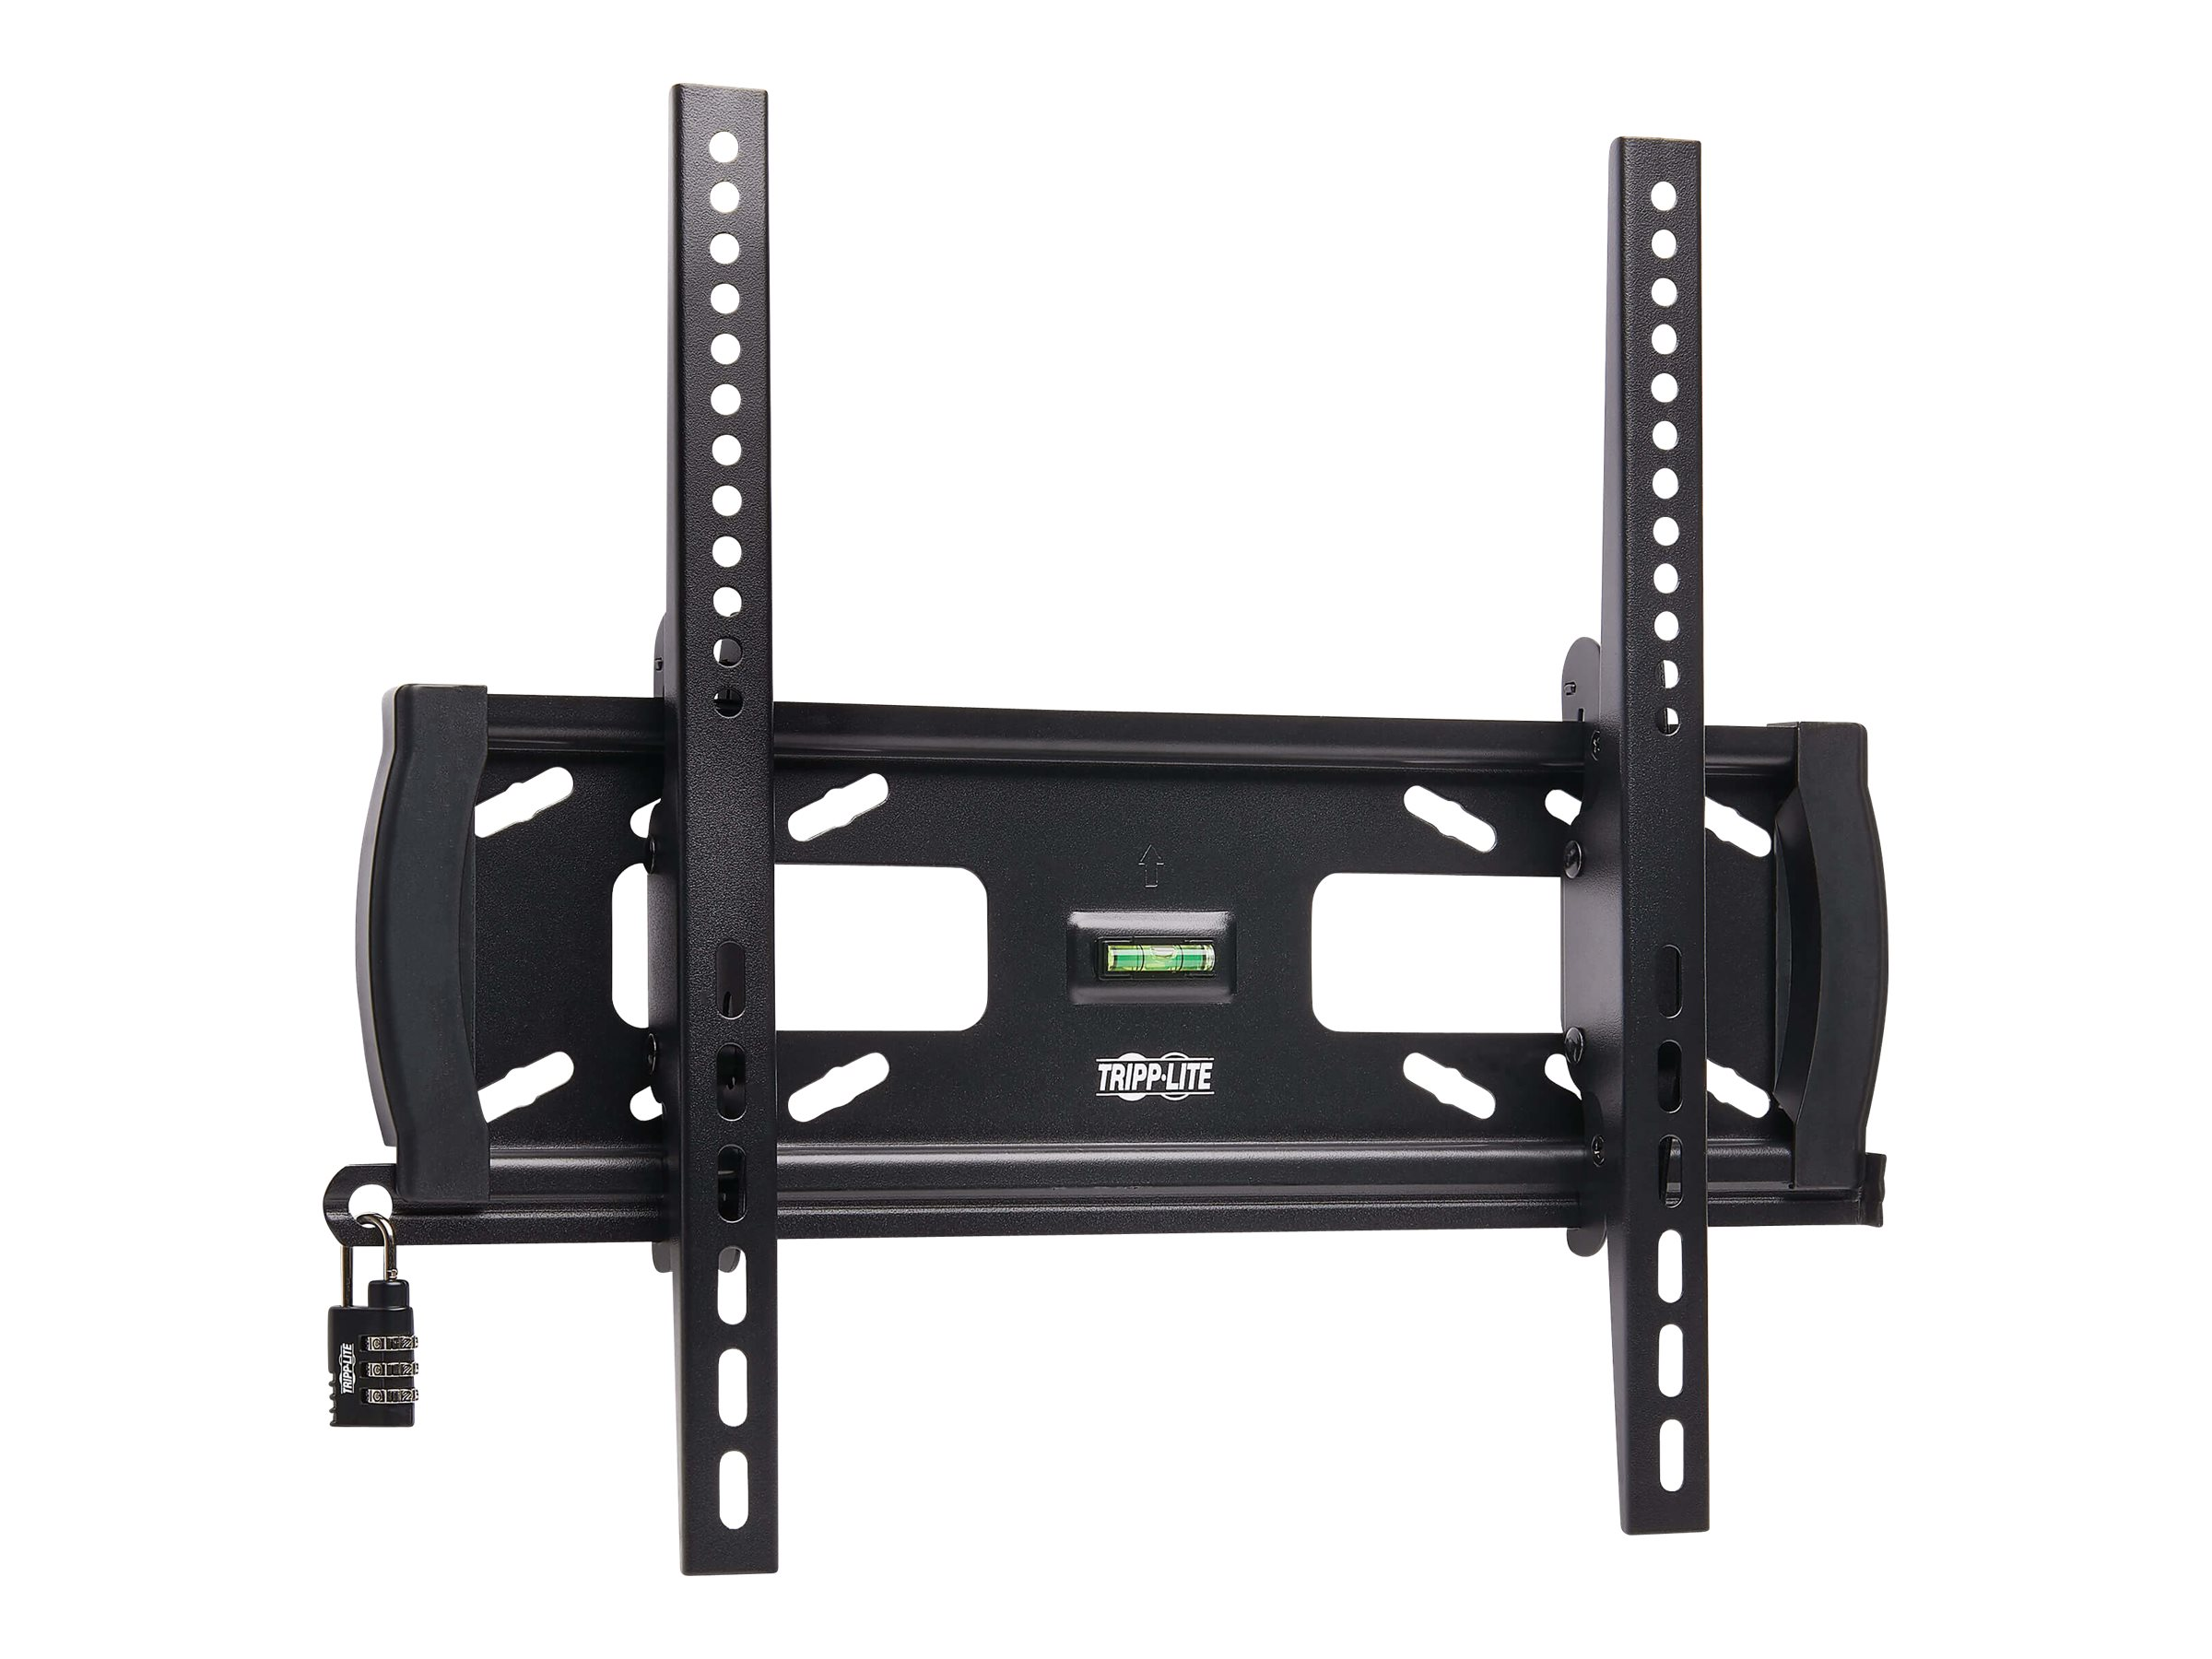 """Tripp Lite Heavy-Duty Tilt Security Display TV Wall Mount for 32"""" to 55"""" TVs and Monitors, Flat or Curved Screens - wal…"""